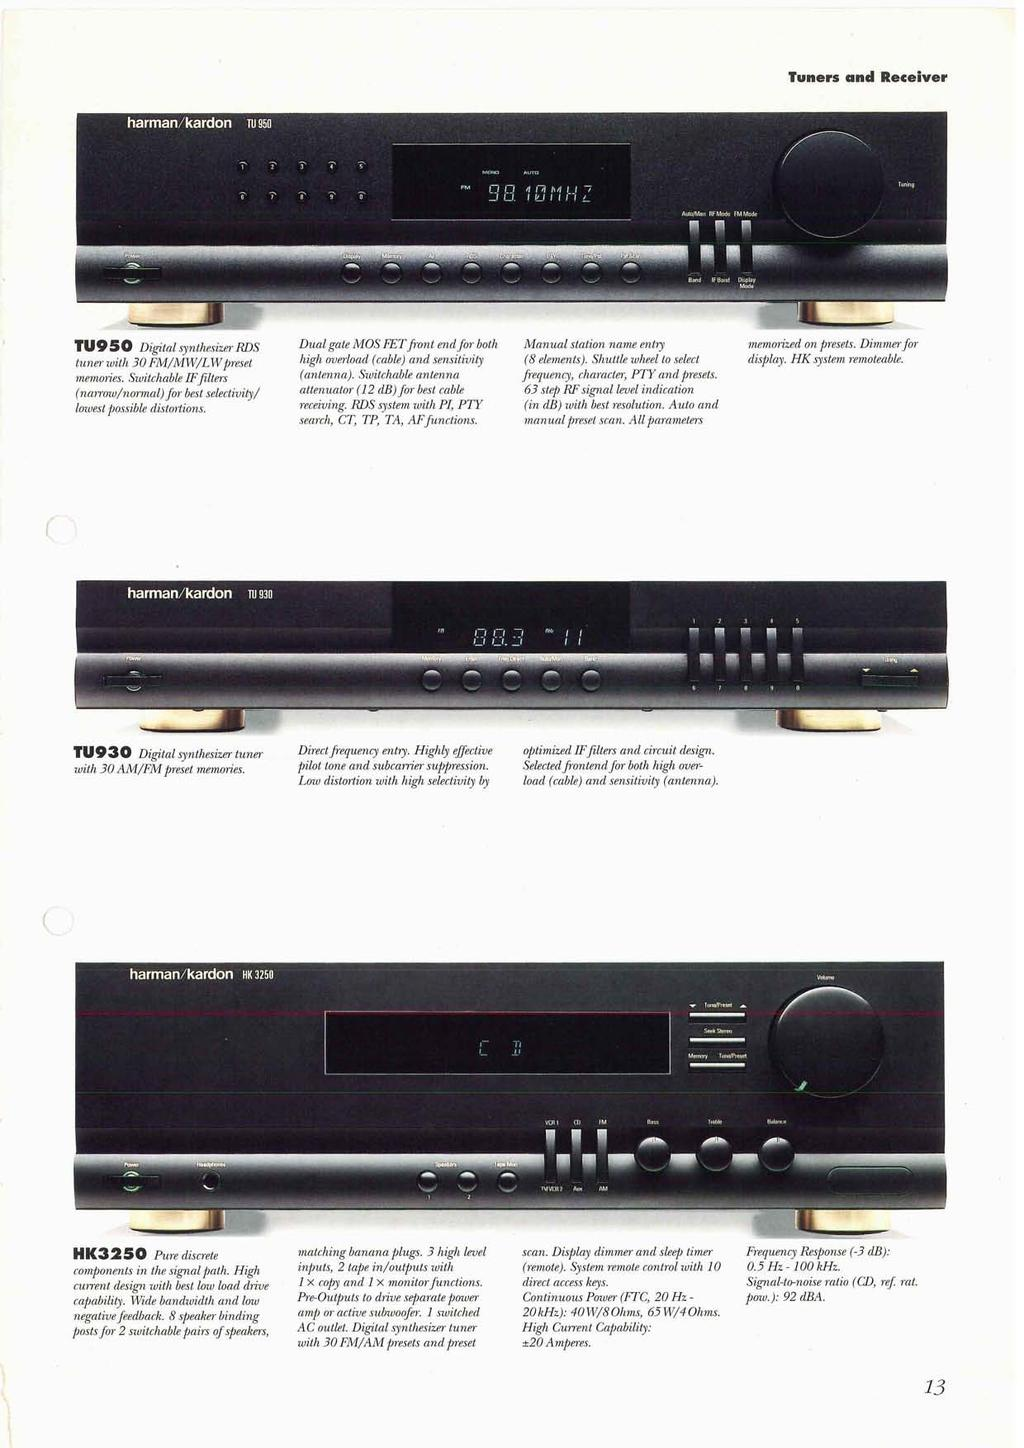 Audio Video Receivers 4 Amplifiers 6 Stereo 8 Compact Fm Antenna Booster Circuit P Marian Tuners And Receiver Tu950 Digital Synthesizer Rds Tuner With 30 Mw Lwpreset Memories